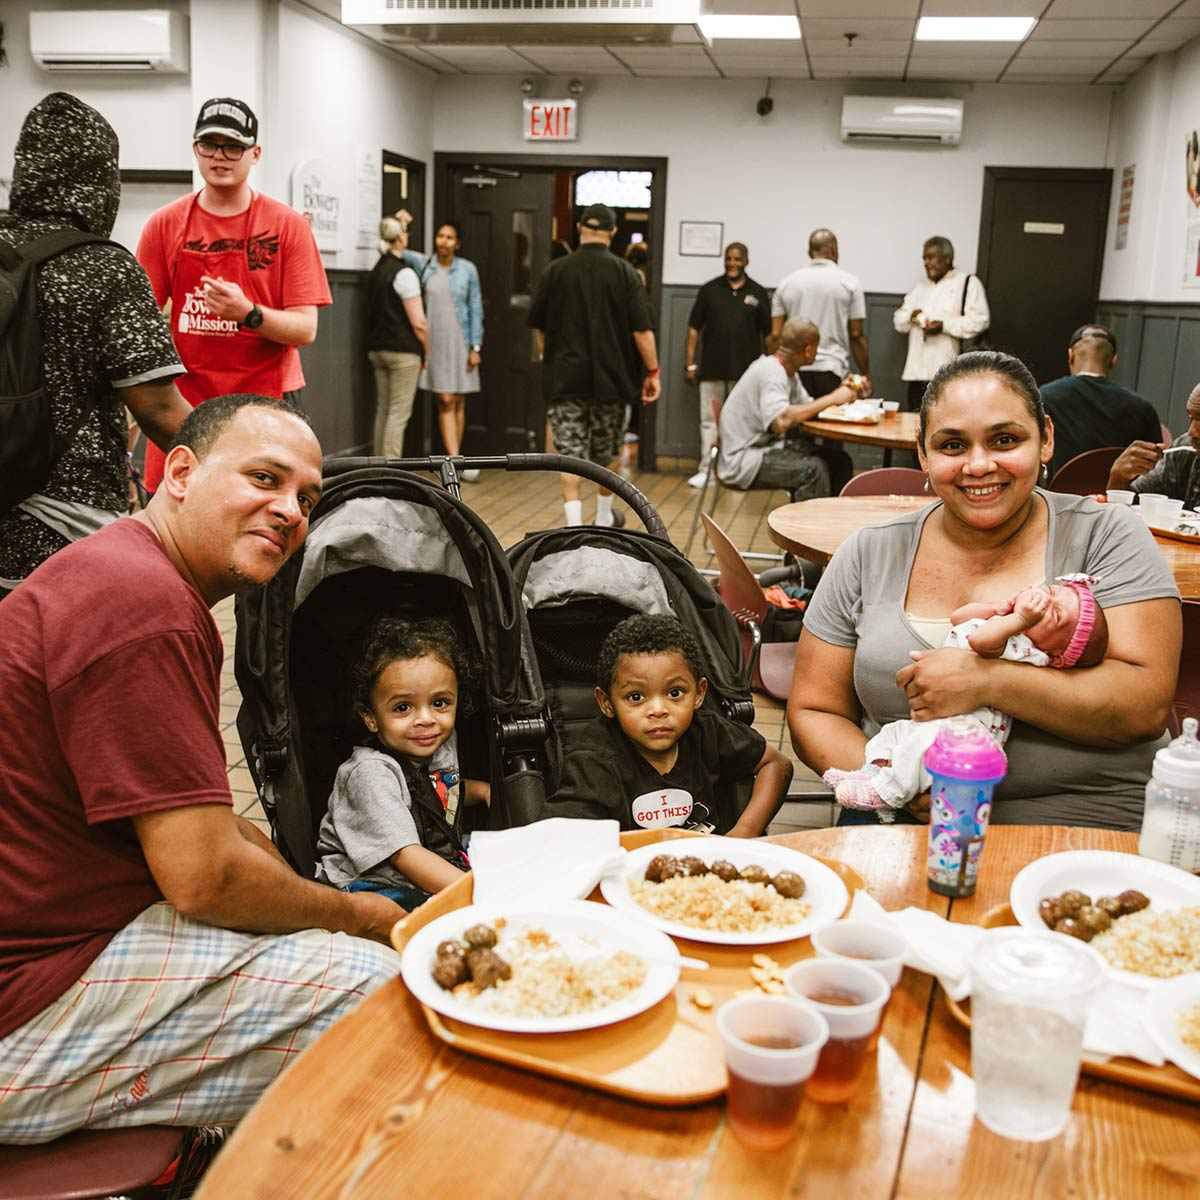 Family eating at The Bowery Mission